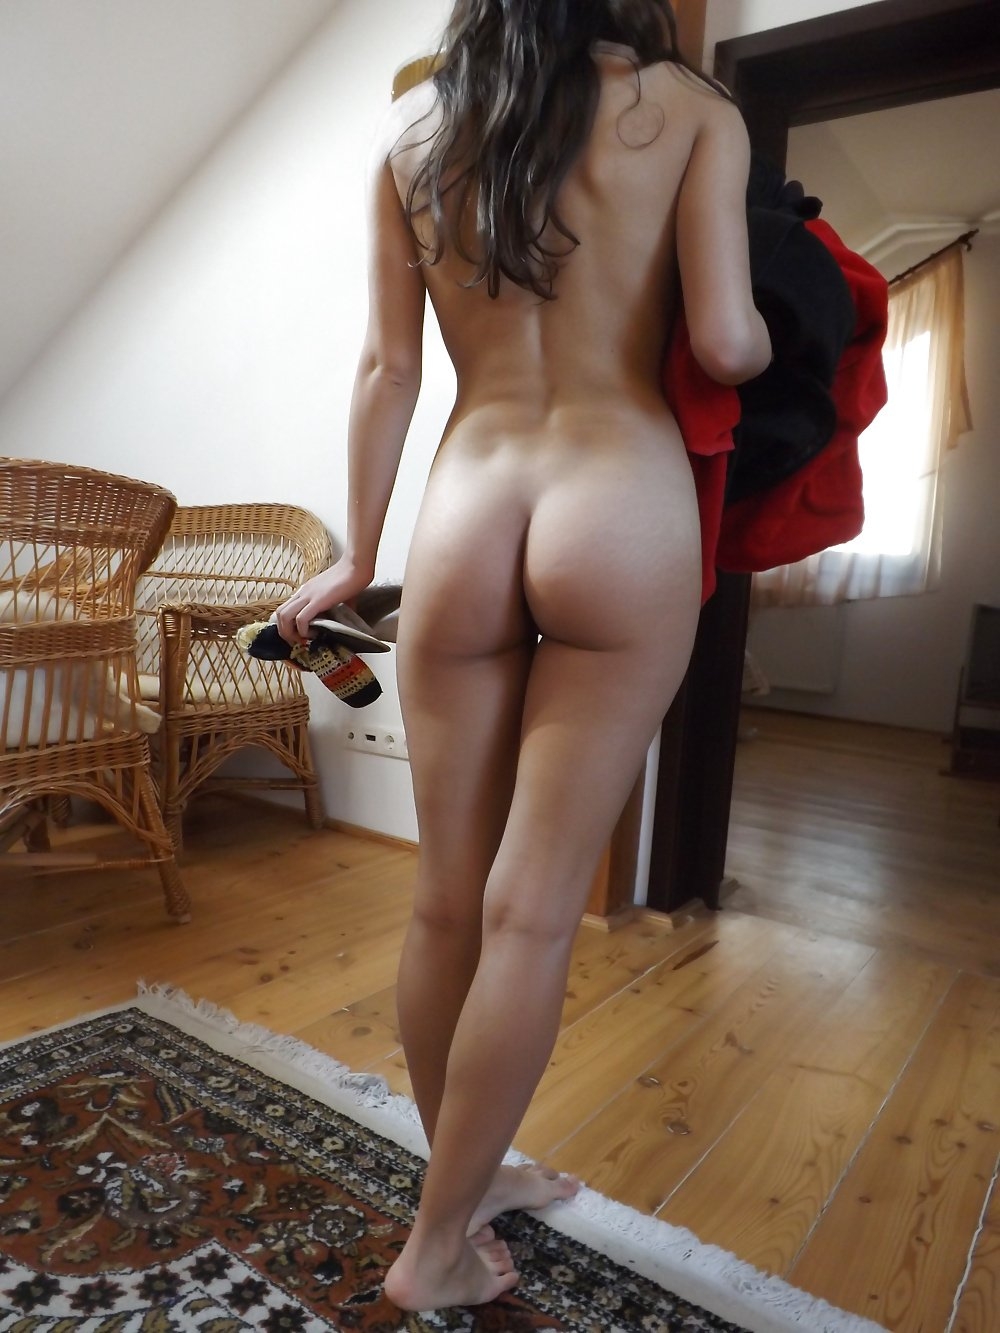 live sex cams and adult chat for free arab wedding porn